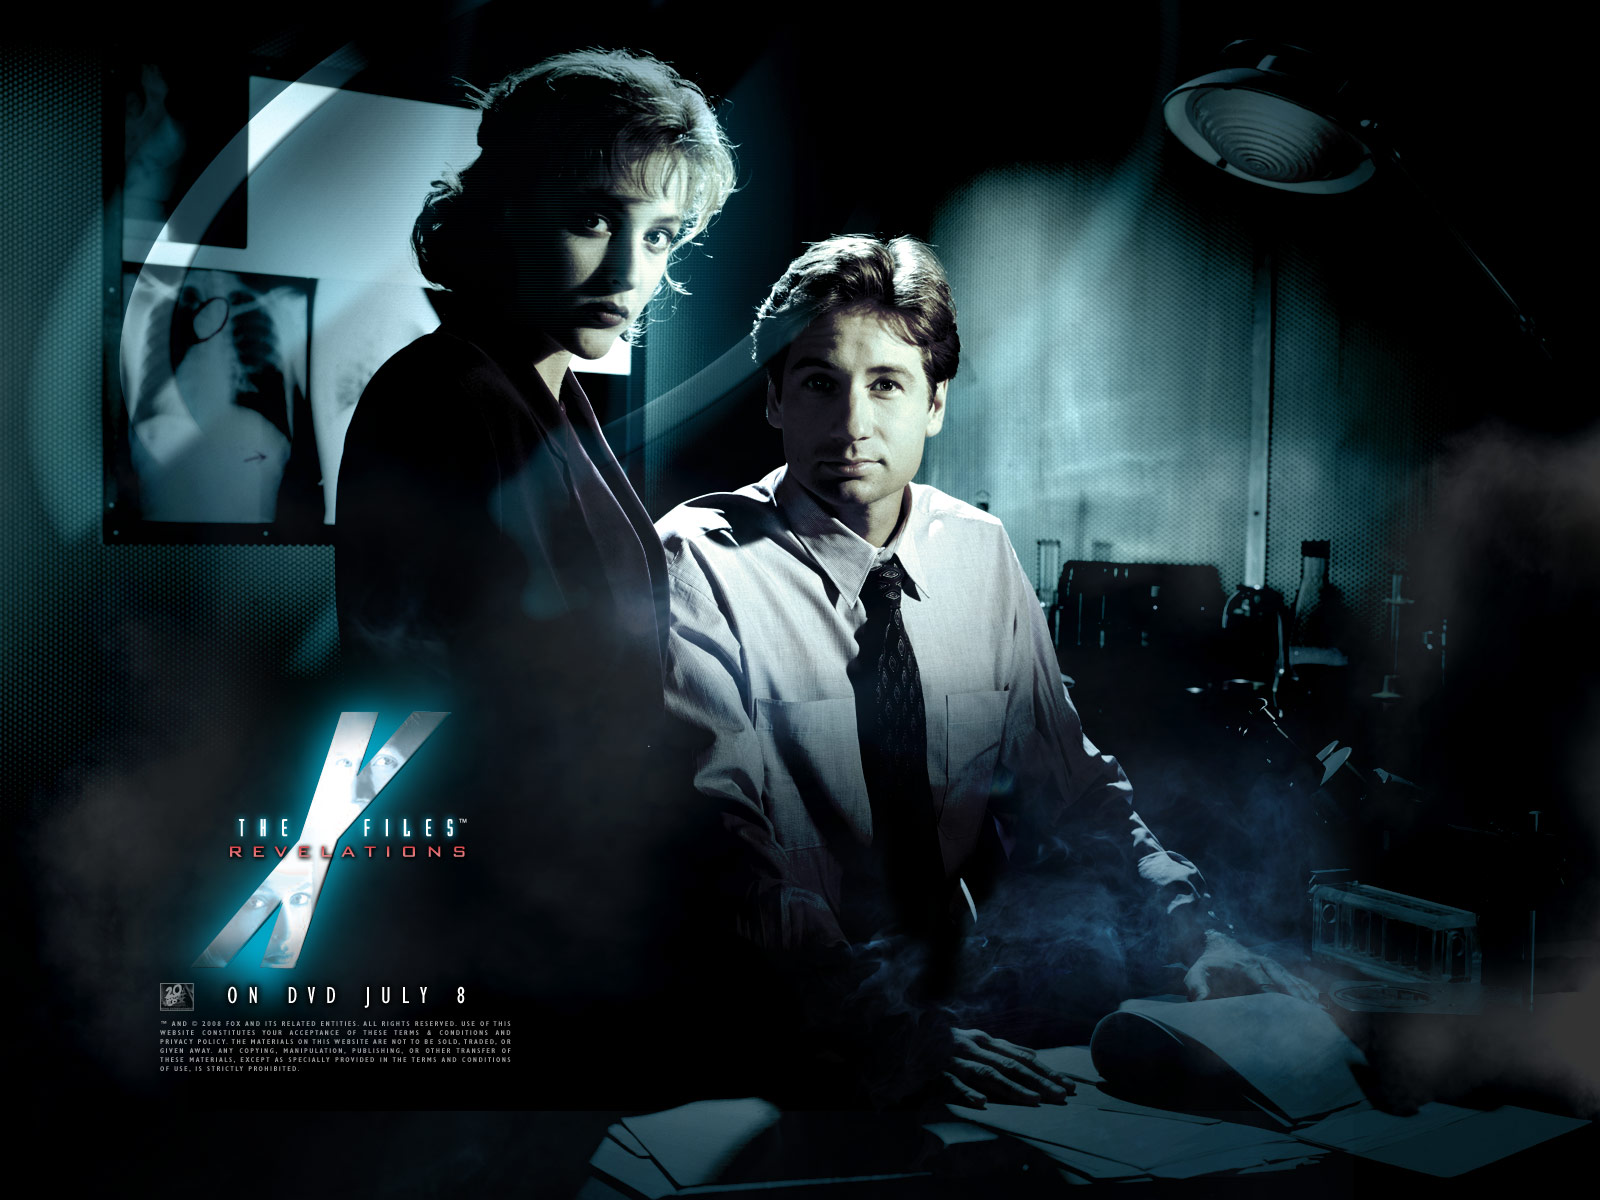 Wallpaper iphone x files - The X Files Hd Wallpapers For Desktop Download